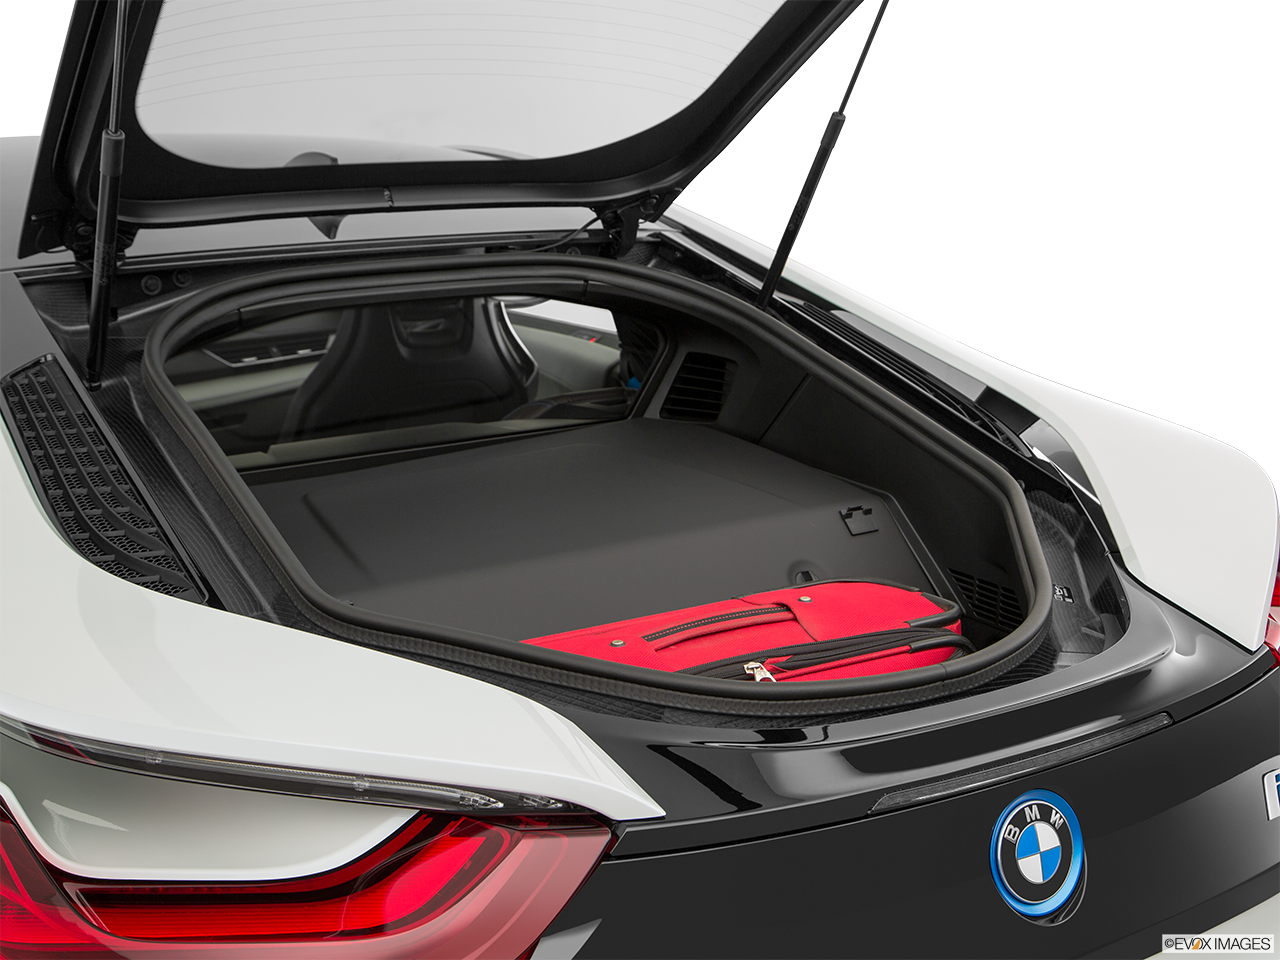 Trunk view of the BMW i8